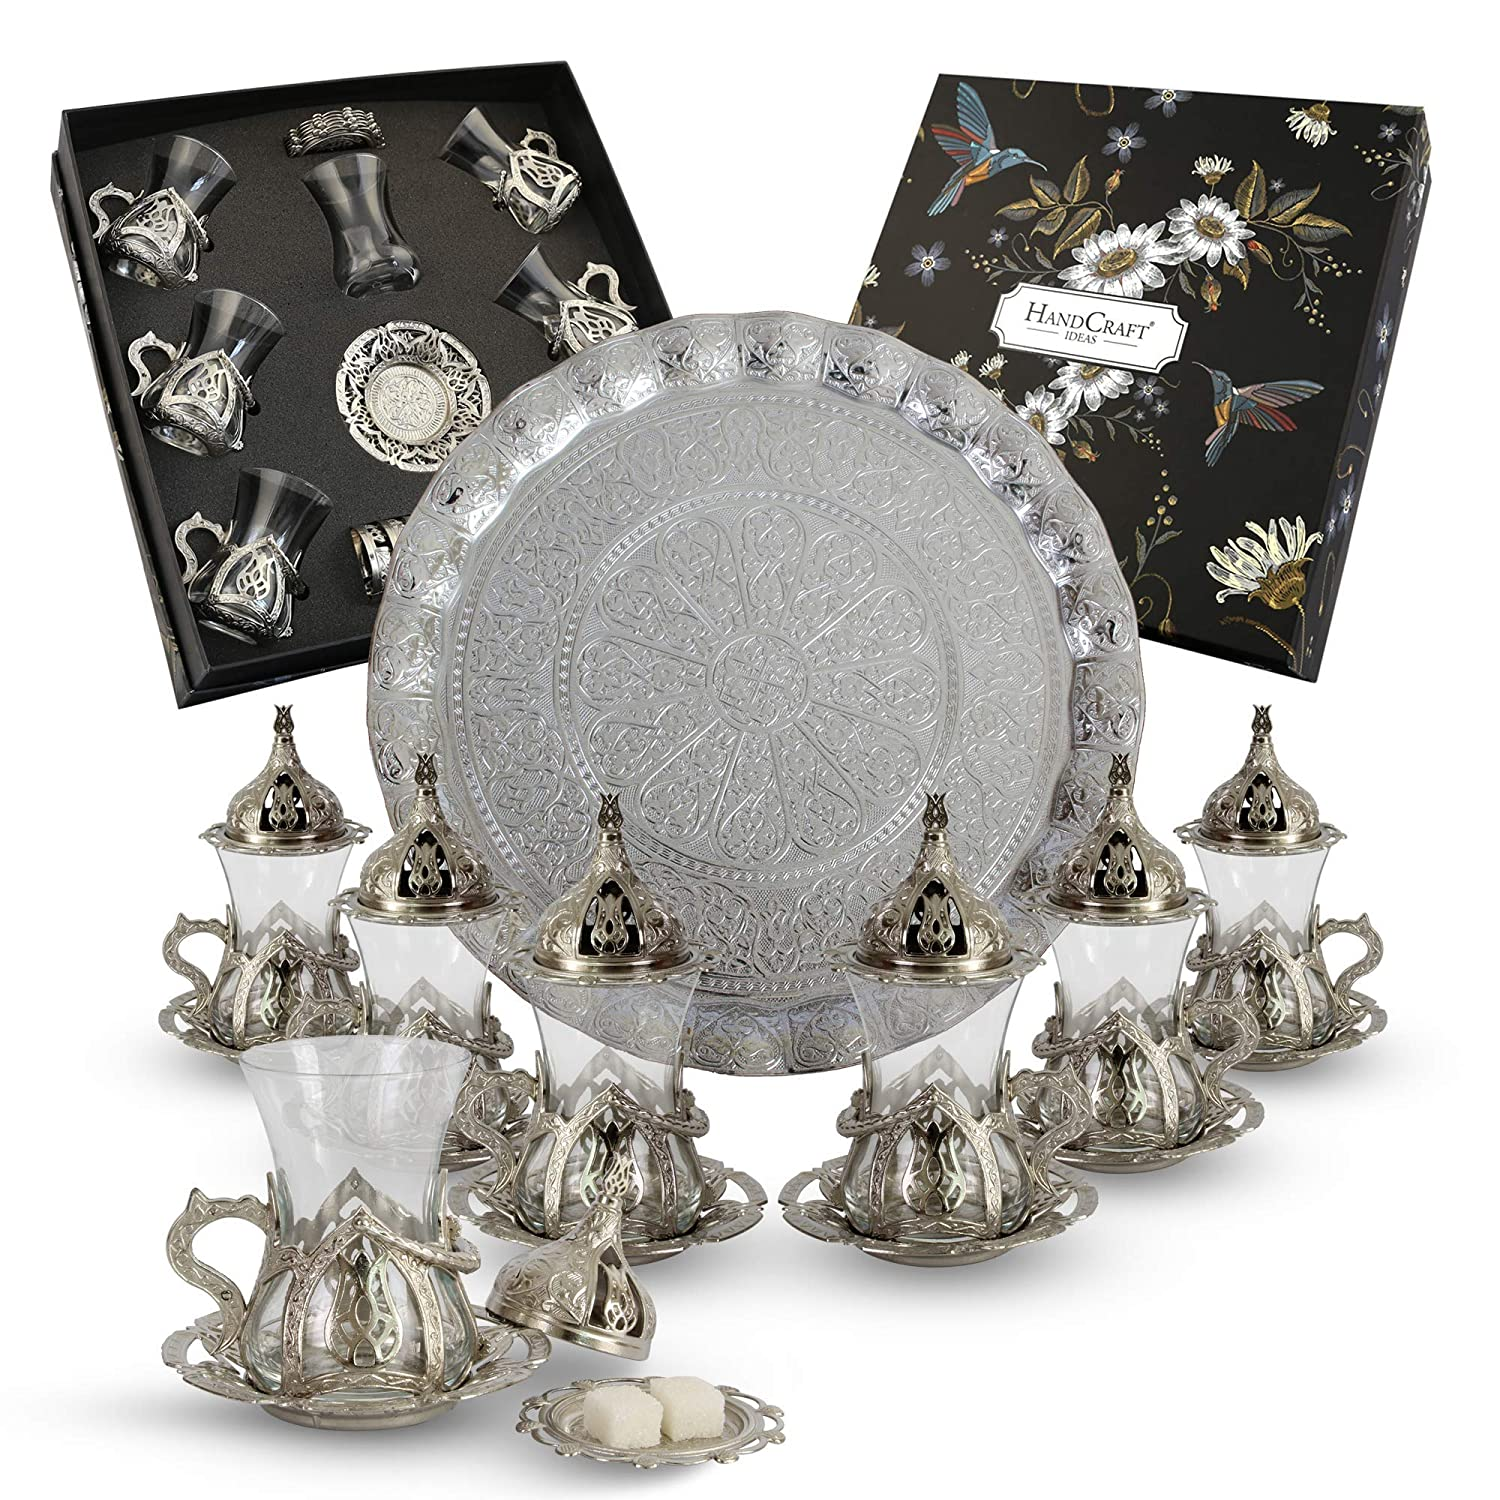 Our shop most popular HANDCRAFT IDEAS - Max 49% OFF Turkish Tea Set Glasses for Six Cups